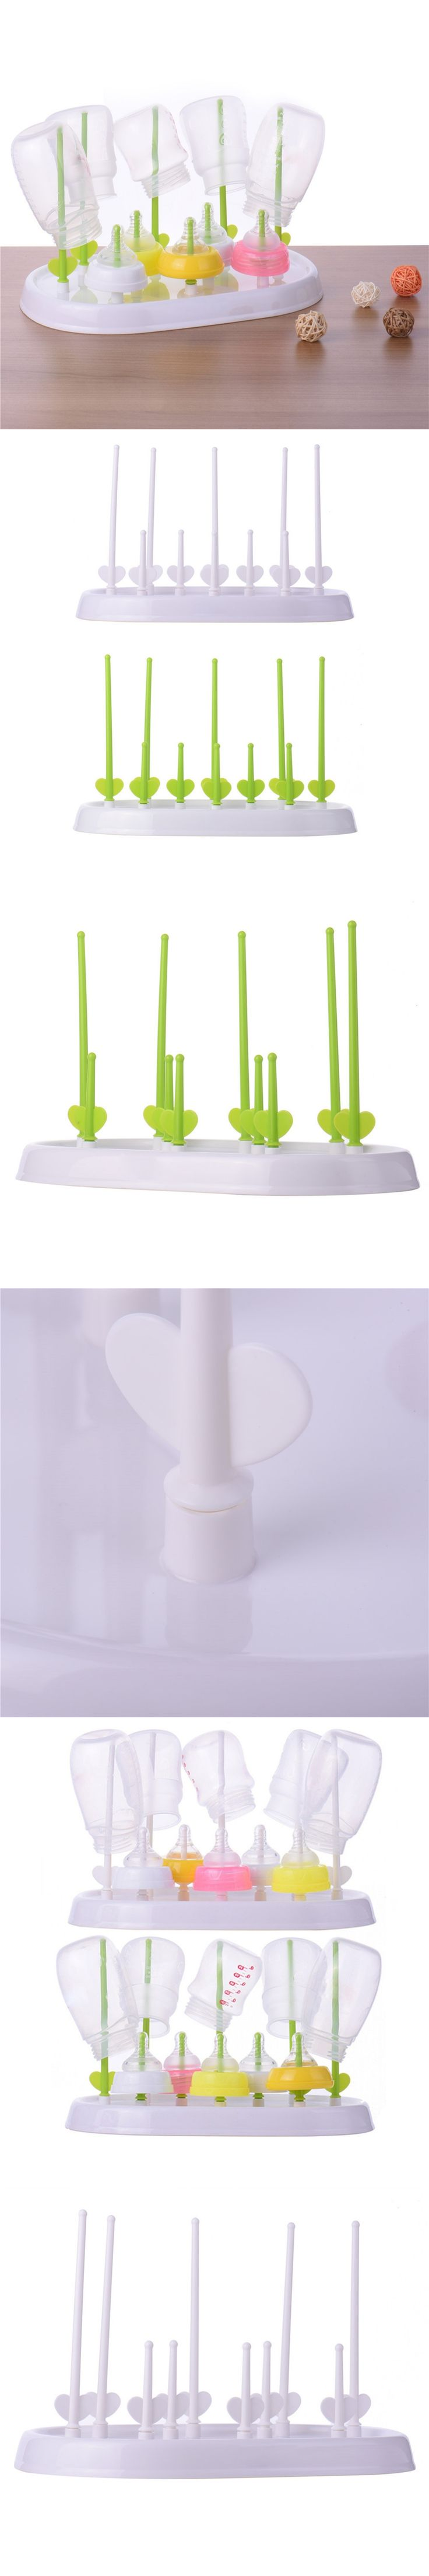 Convenient Baby Bottle Drying Rack Bottles Baby Bottle Cleaning Dryer Drainer Storage Rack Glass Countertop For Babies Bottles